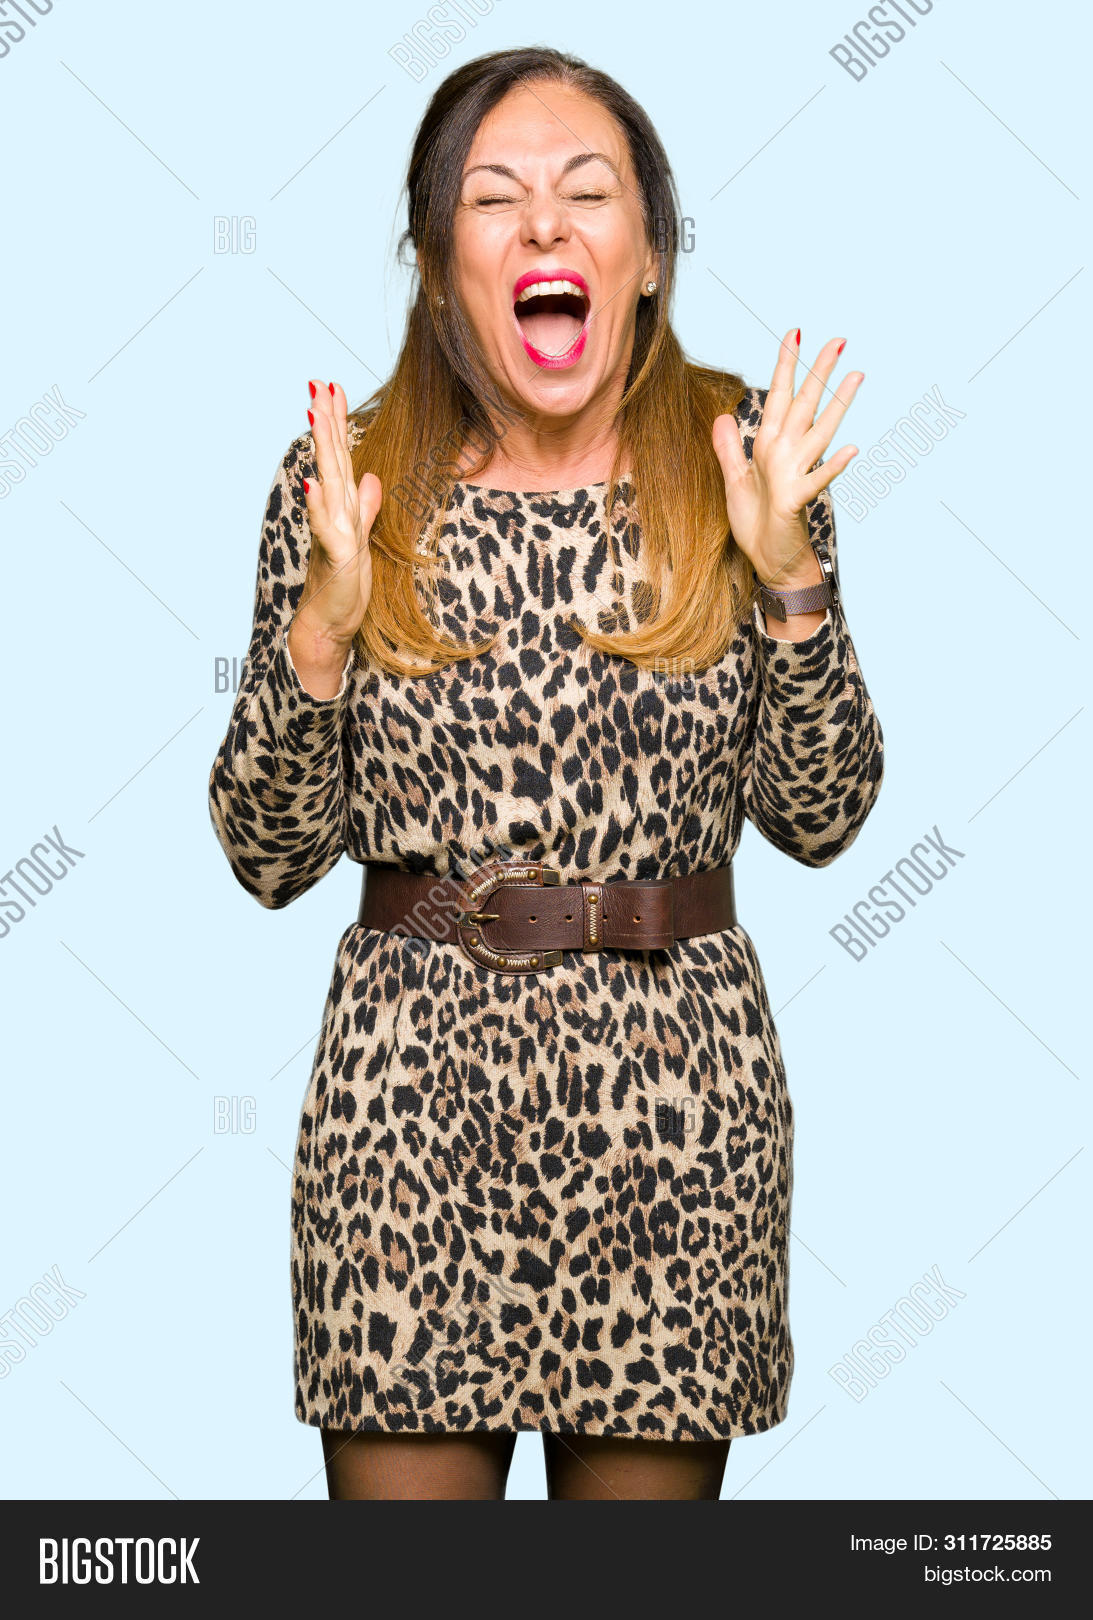 achievement,adult,animal print,arms,attractive,background,beautiful,brunette,business,celebrating,celebration,cheer,crazy,demented,dress,elegant,excited,expression,face,full body,fun,funny,gesture,happiness,happy,hispanic,isolated,joyful,leopard,lifestyle,lunatic,mad,mature,middle age,party,portrait,raised,scream,senior,smile,smiling,success,successful,triumph,victory,wearing,win,winner,winning,woman